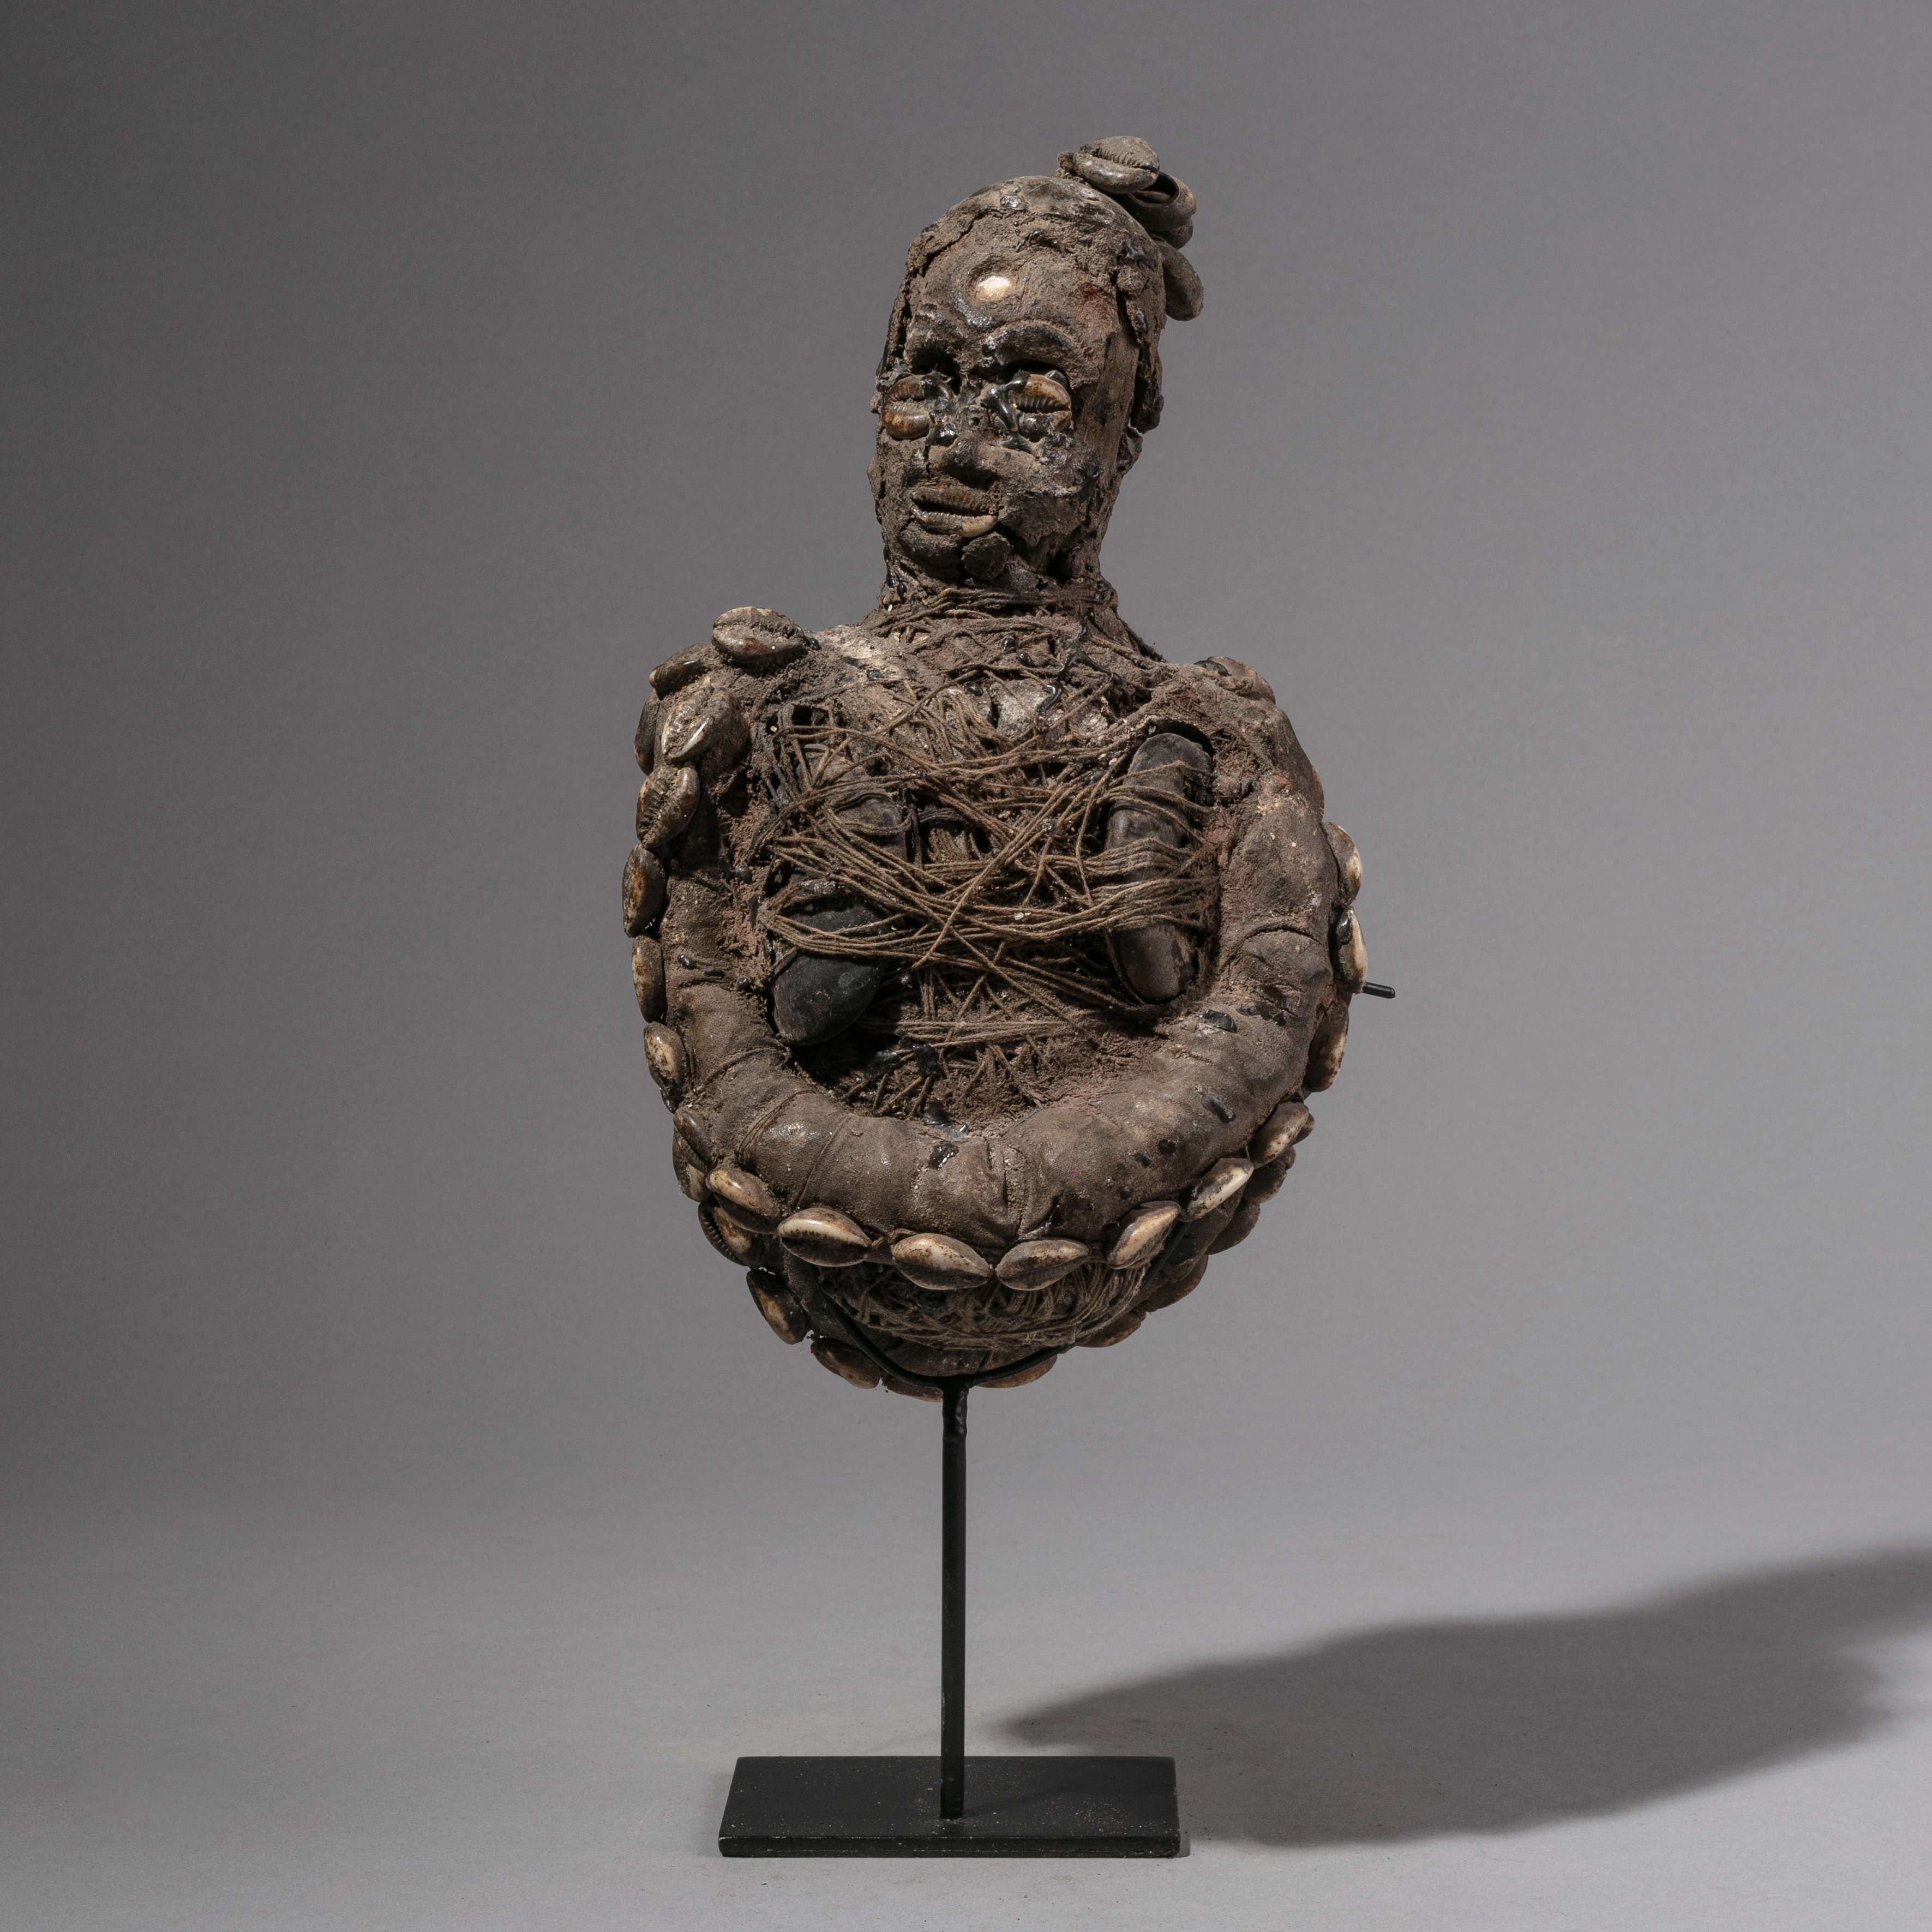 SD AN OTHERWORLDLY JANUS BOLO FETISH FIGURE FROM NIGERIA  ( No 1206 )